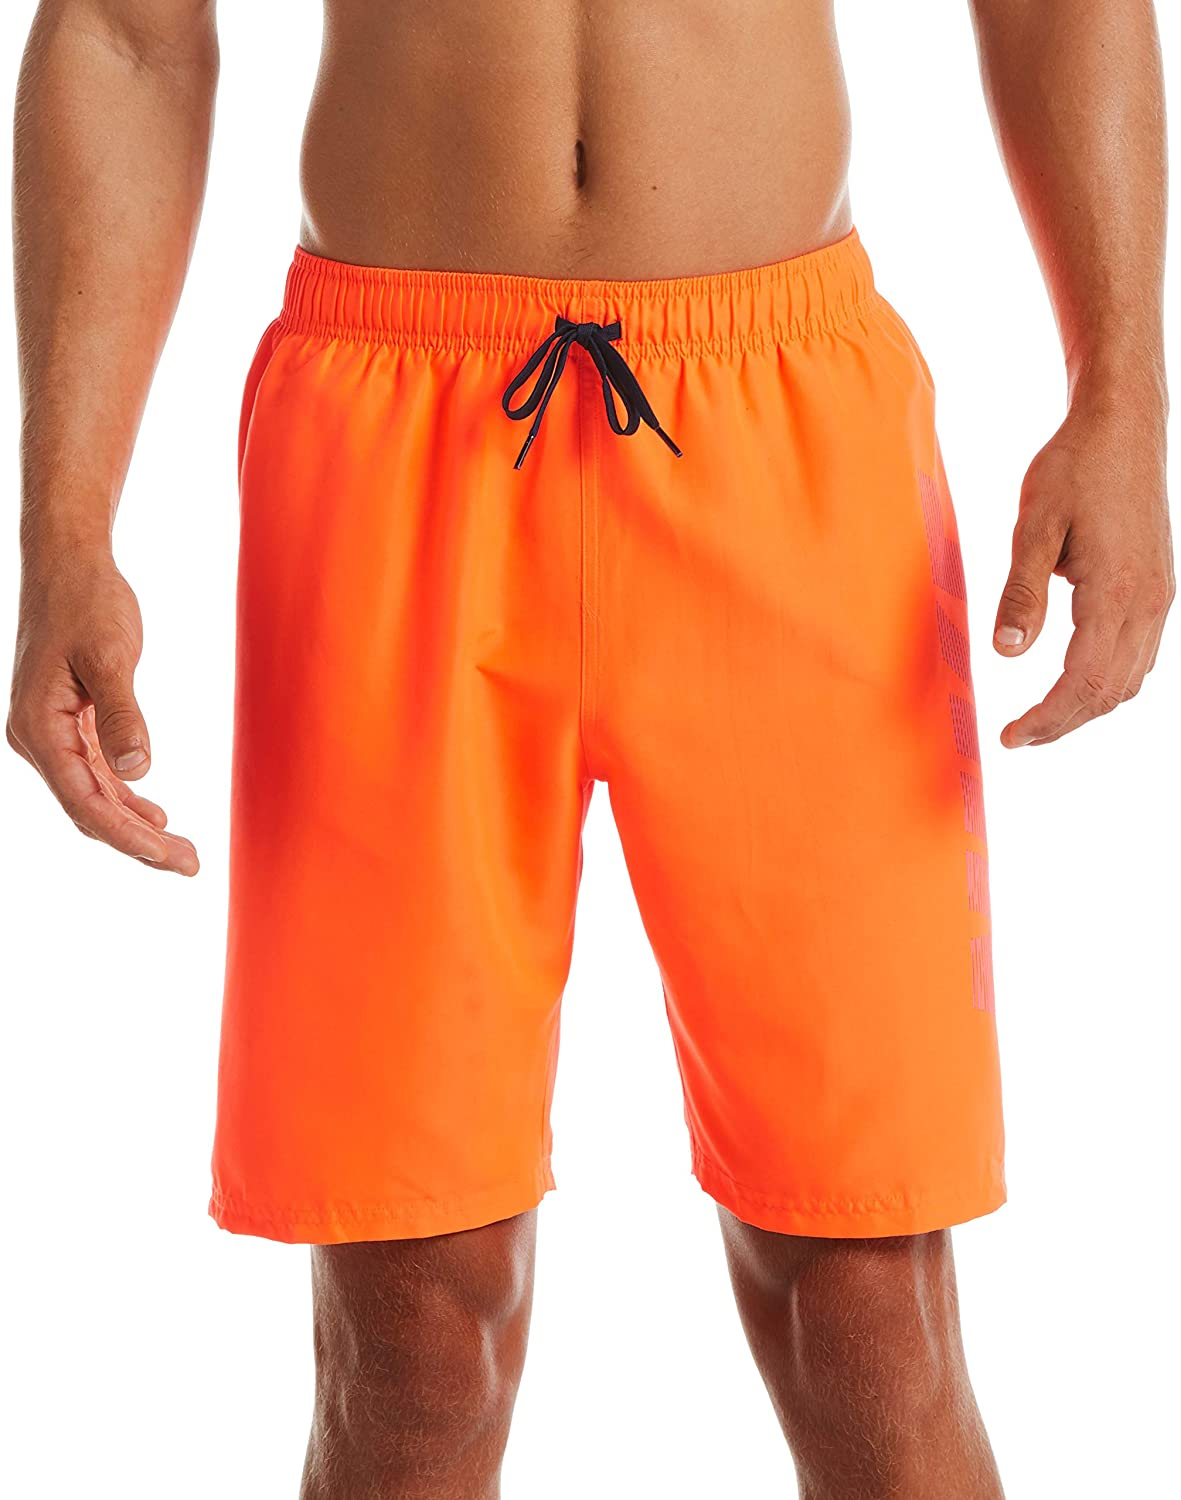 Men's Nike Logo Volley Short Swim Trunk in Total Orange color from the front